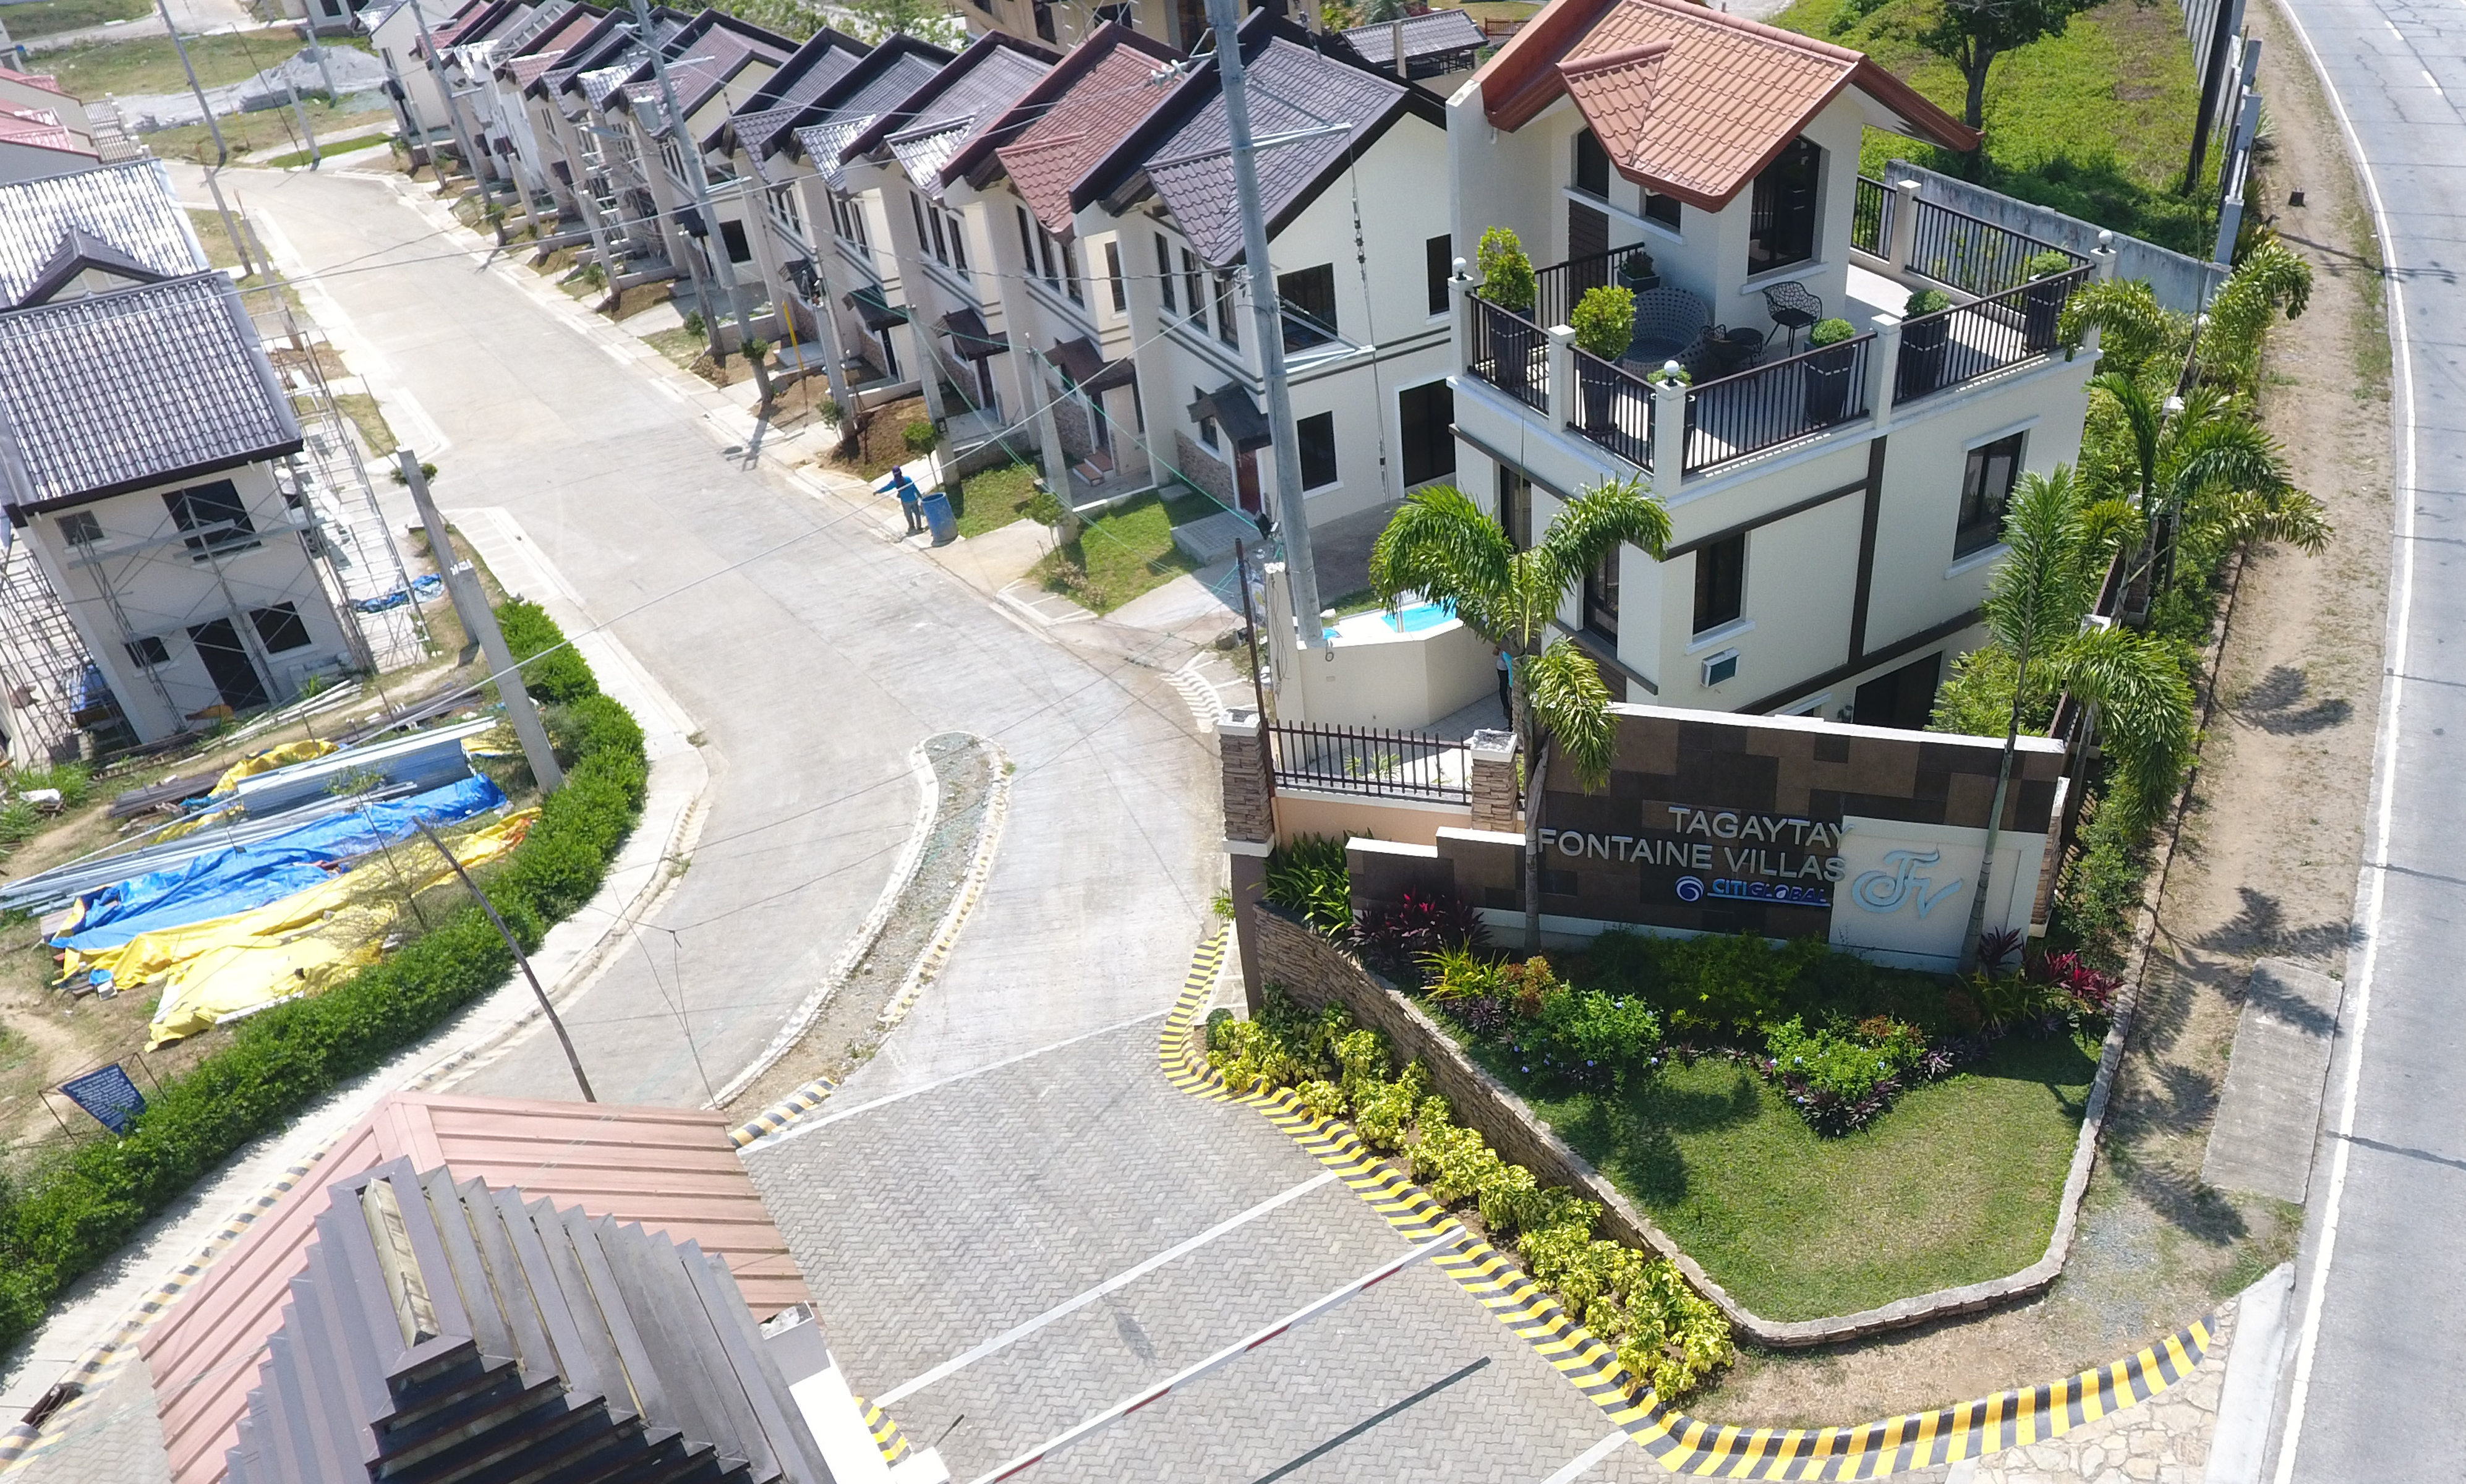 Drone shot of Tagaytay Fontaine Villas